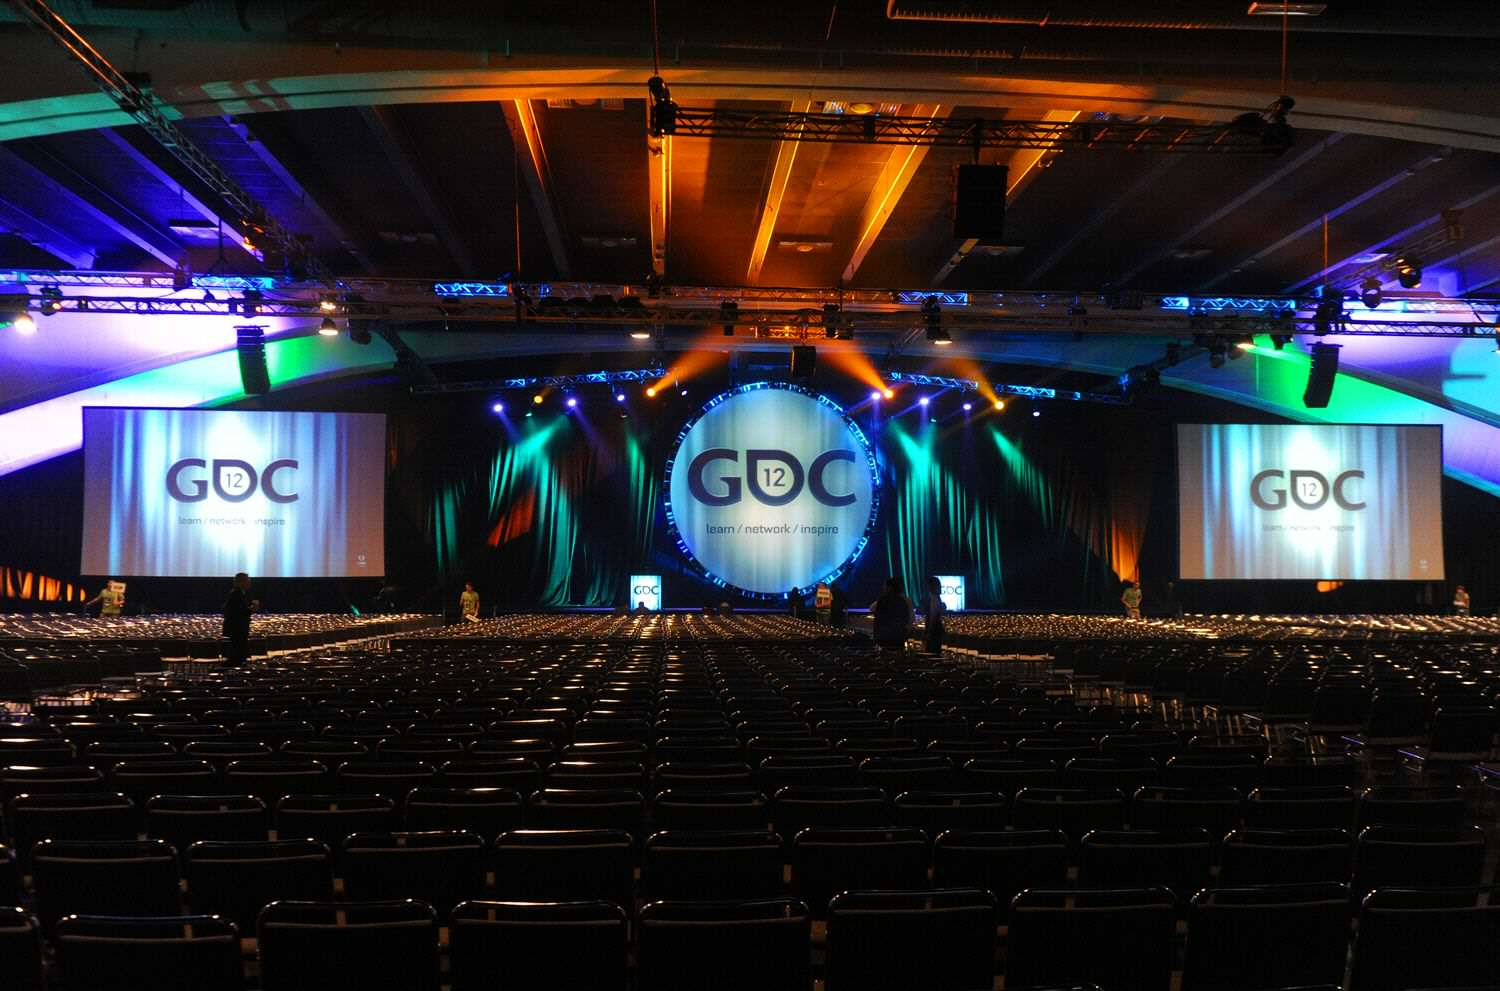 Heres All The Winners And Losers From The GDC Awards 2016 gdc 2012 game awards 342aeae0